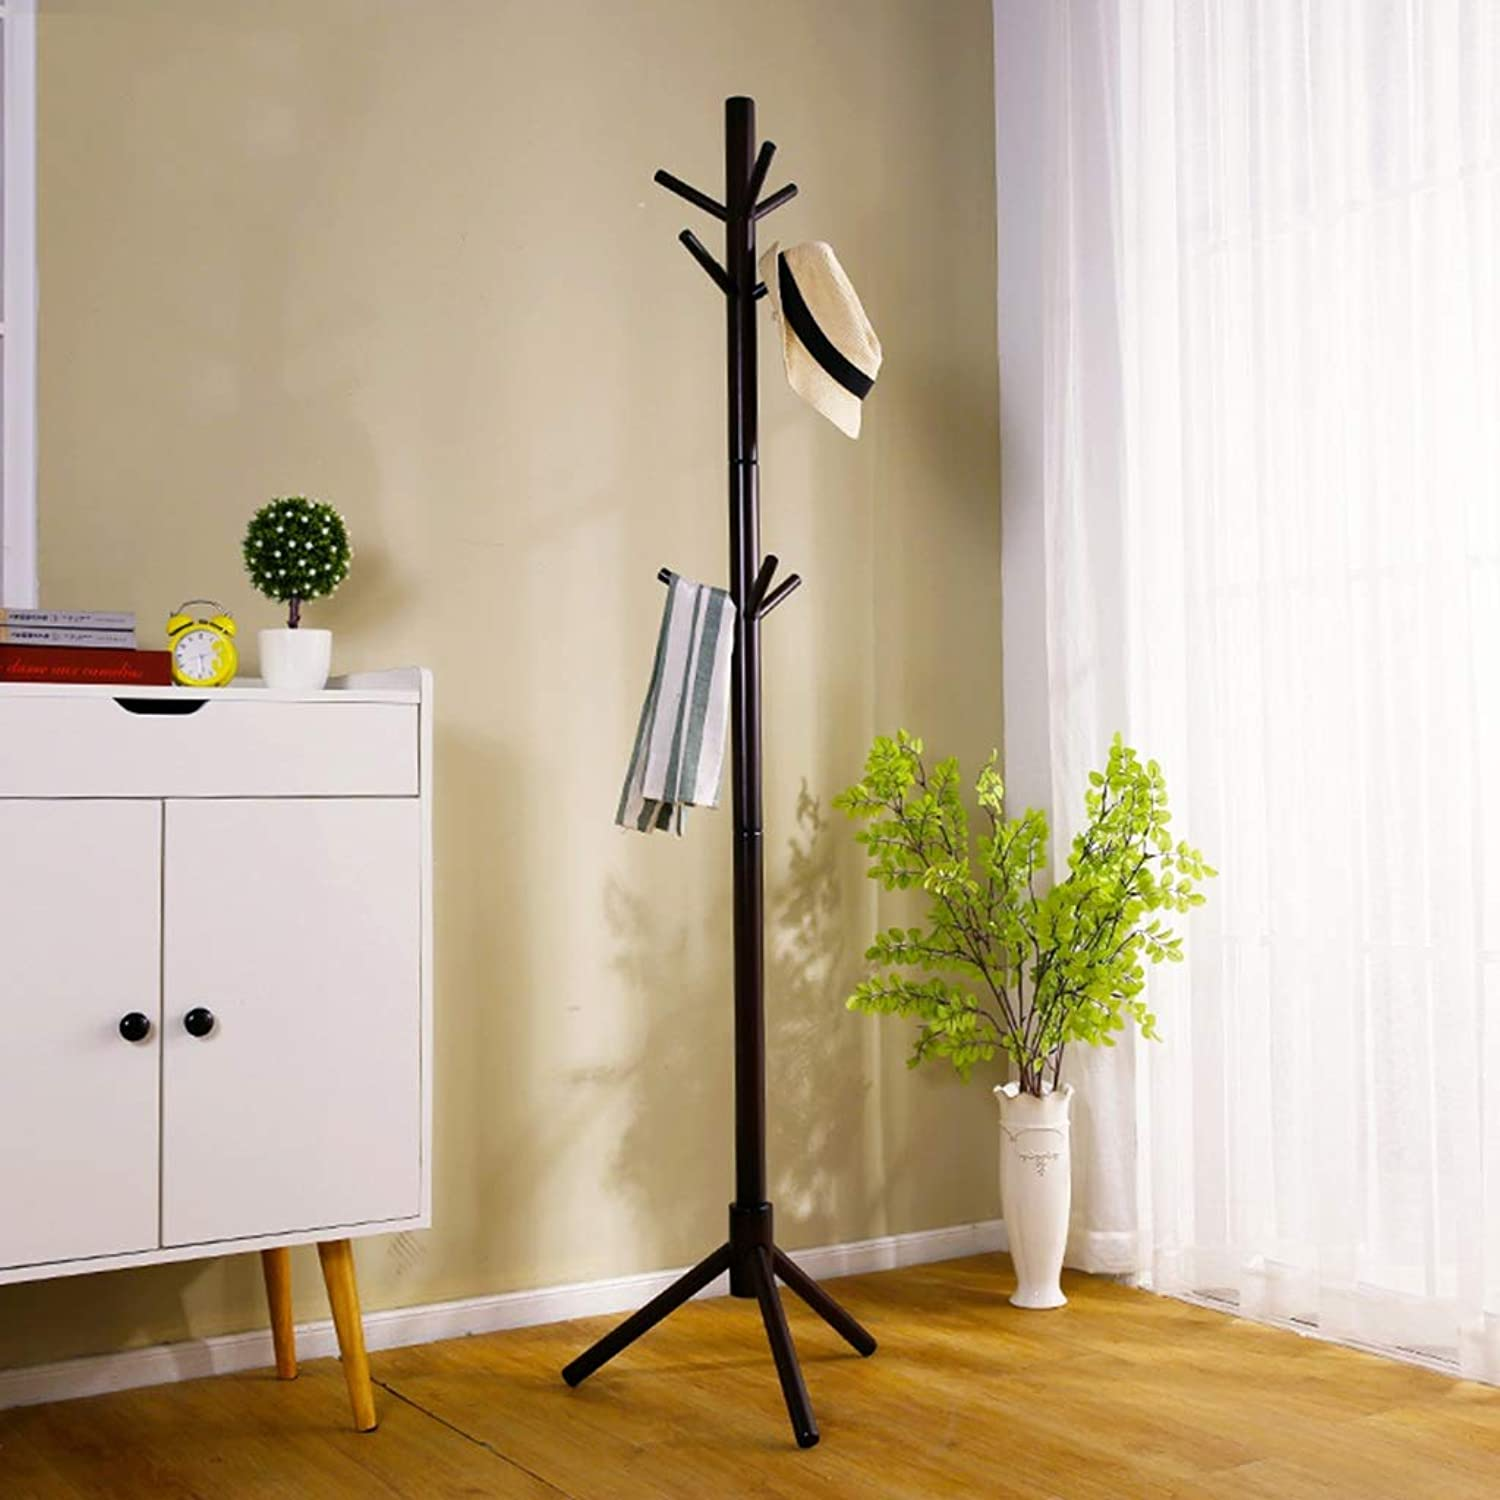 Coat Rack-Floor Solid Wood Coat Rack Home Bedroom Living Room Hanger Rack (color   B)